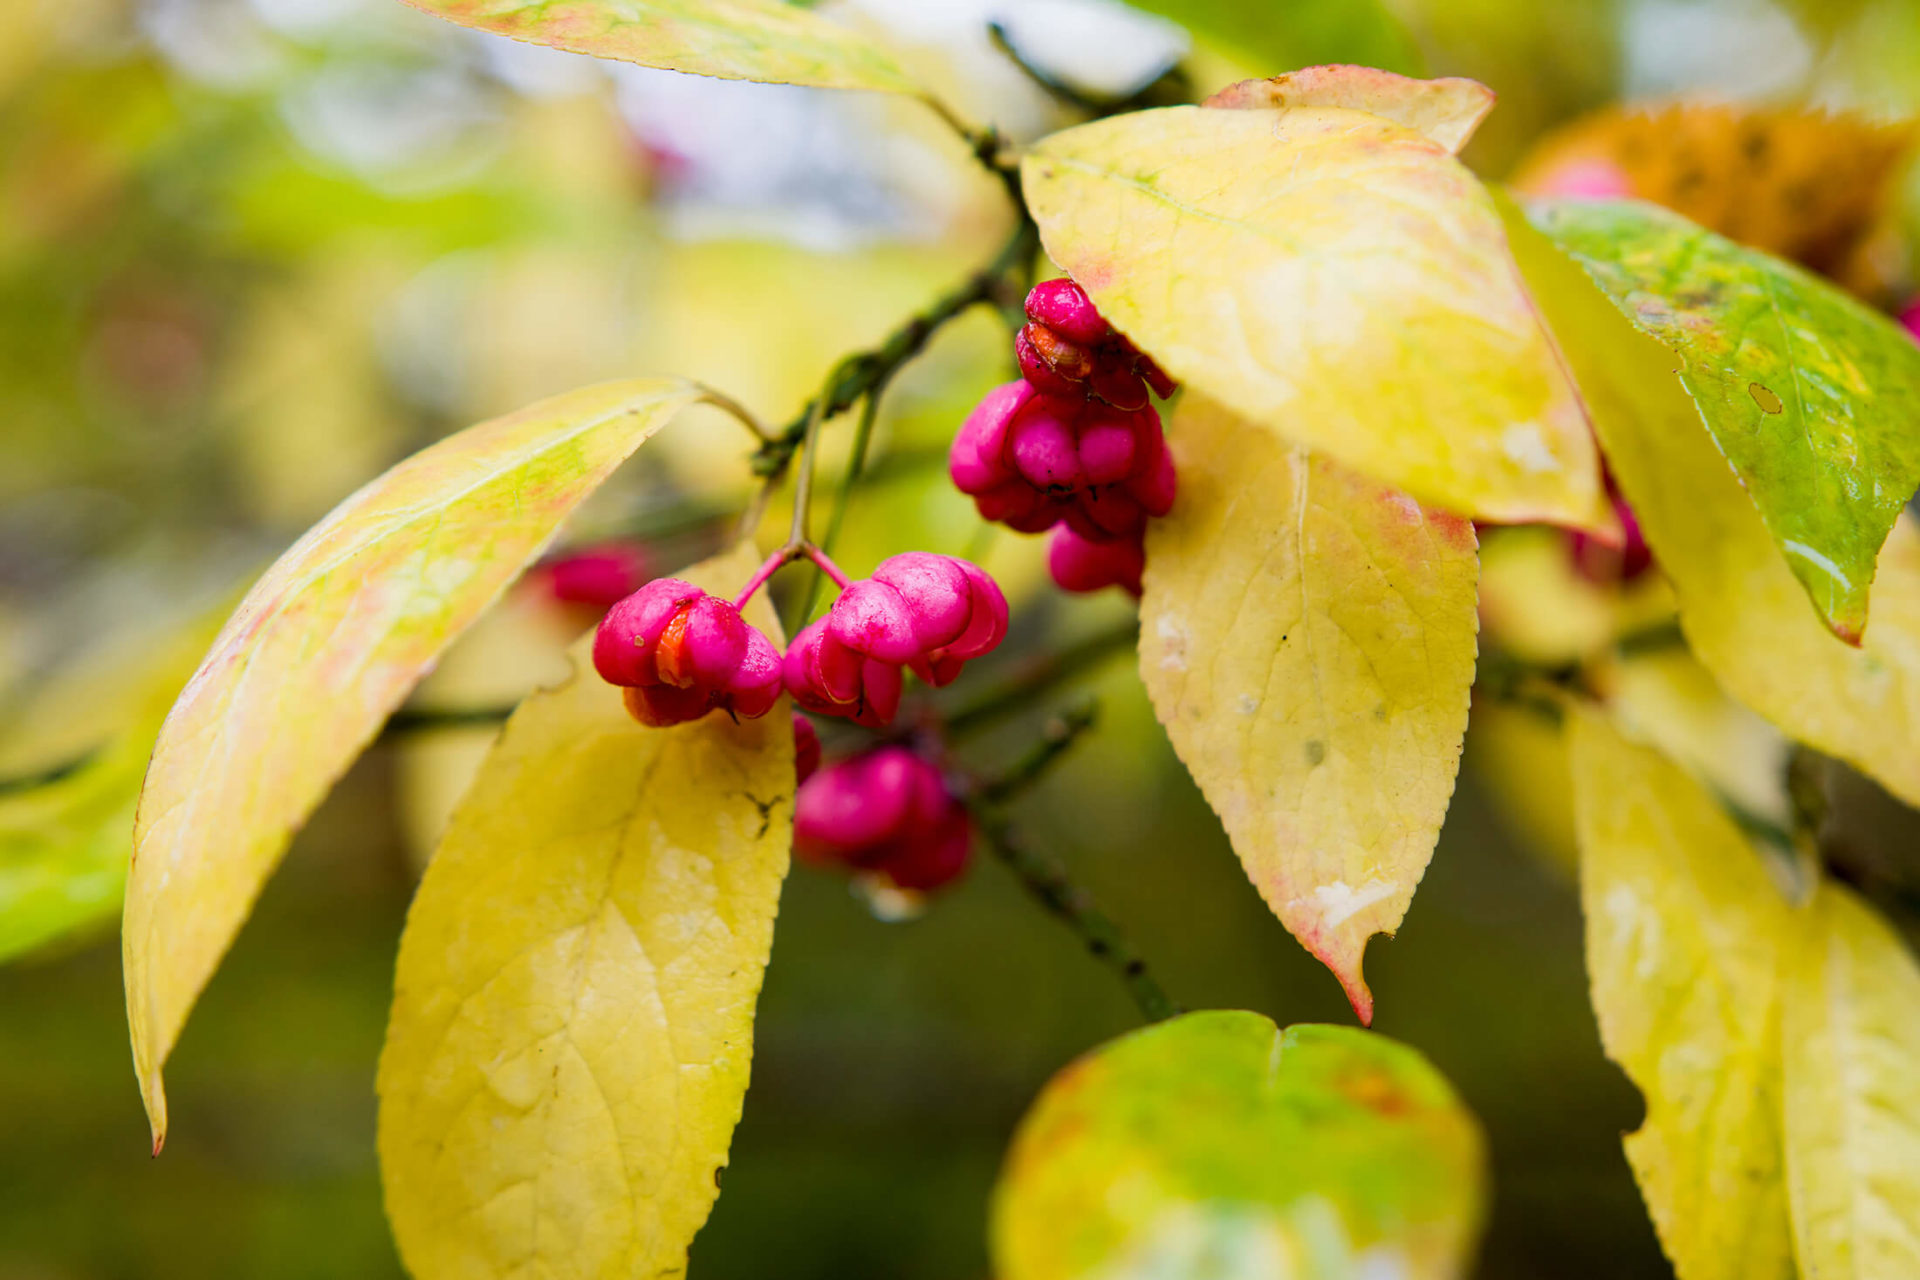 Fruit of the Poisonous Tree | Best Illinois DUI lawyer